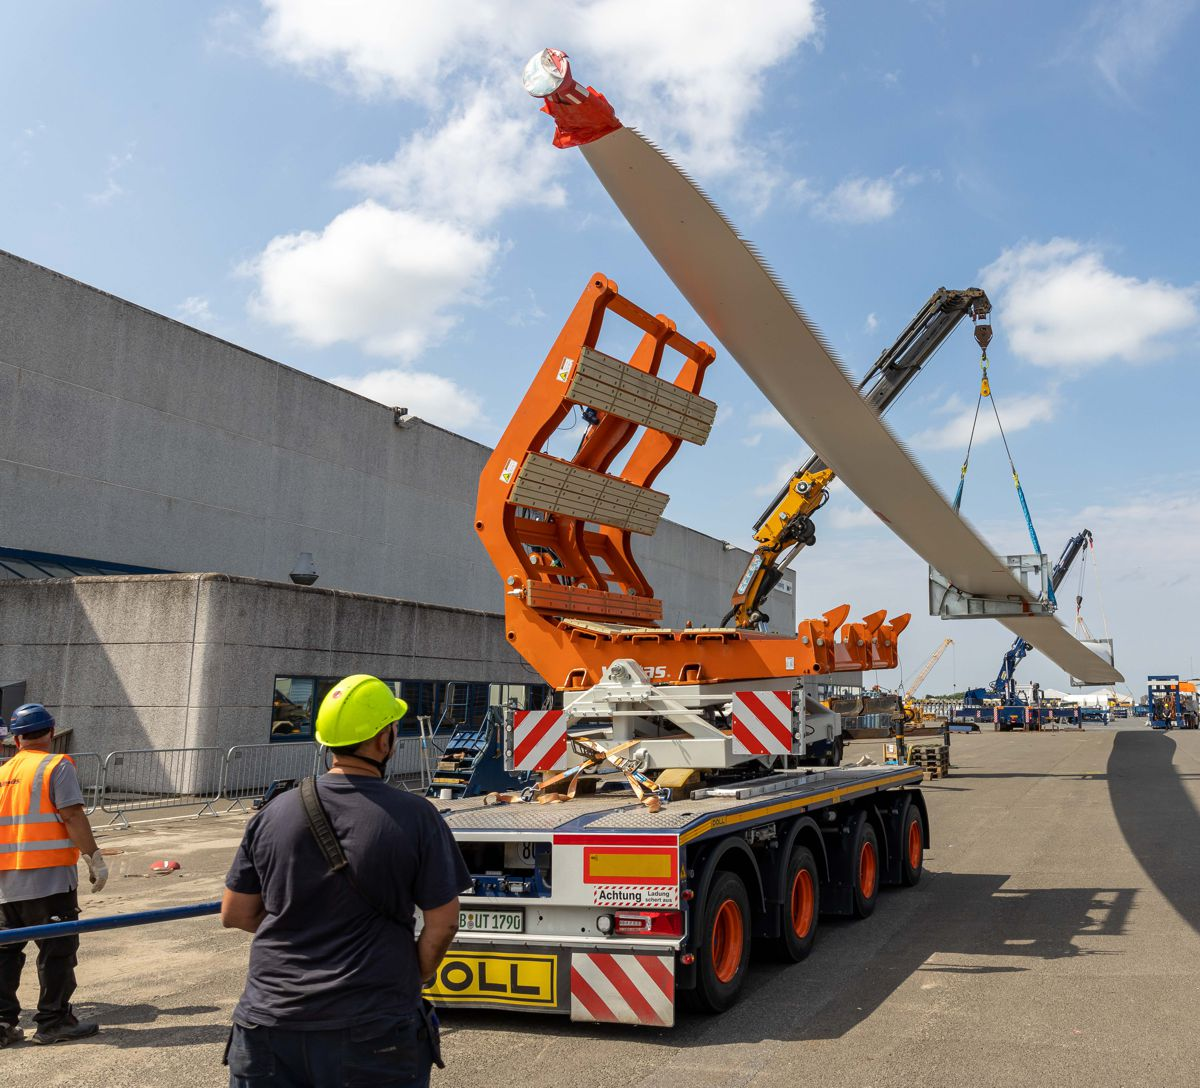 DOLL wind blade transport system approved by all the major wind turbine manufacturers